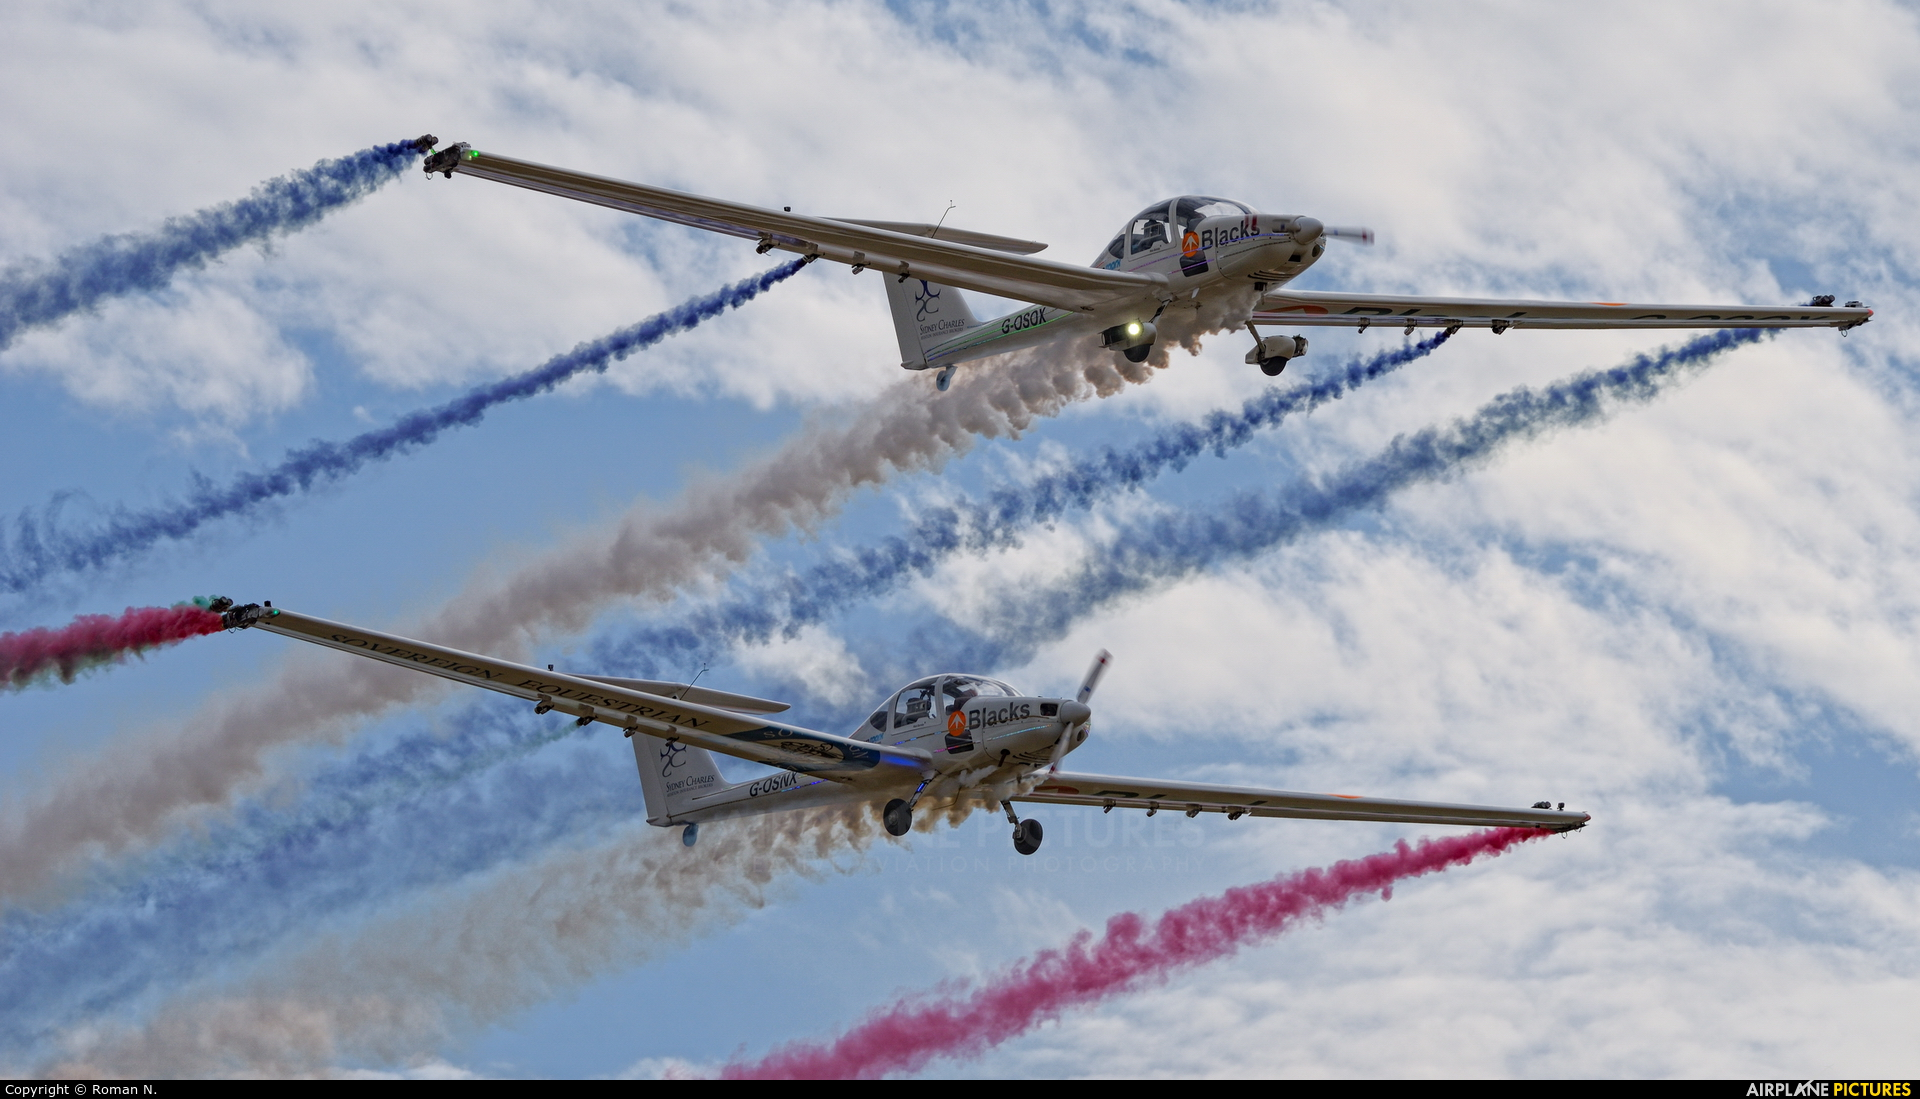 Aerosparx Display Team G-OSOX aircraft at Leszno - Strzyżewice